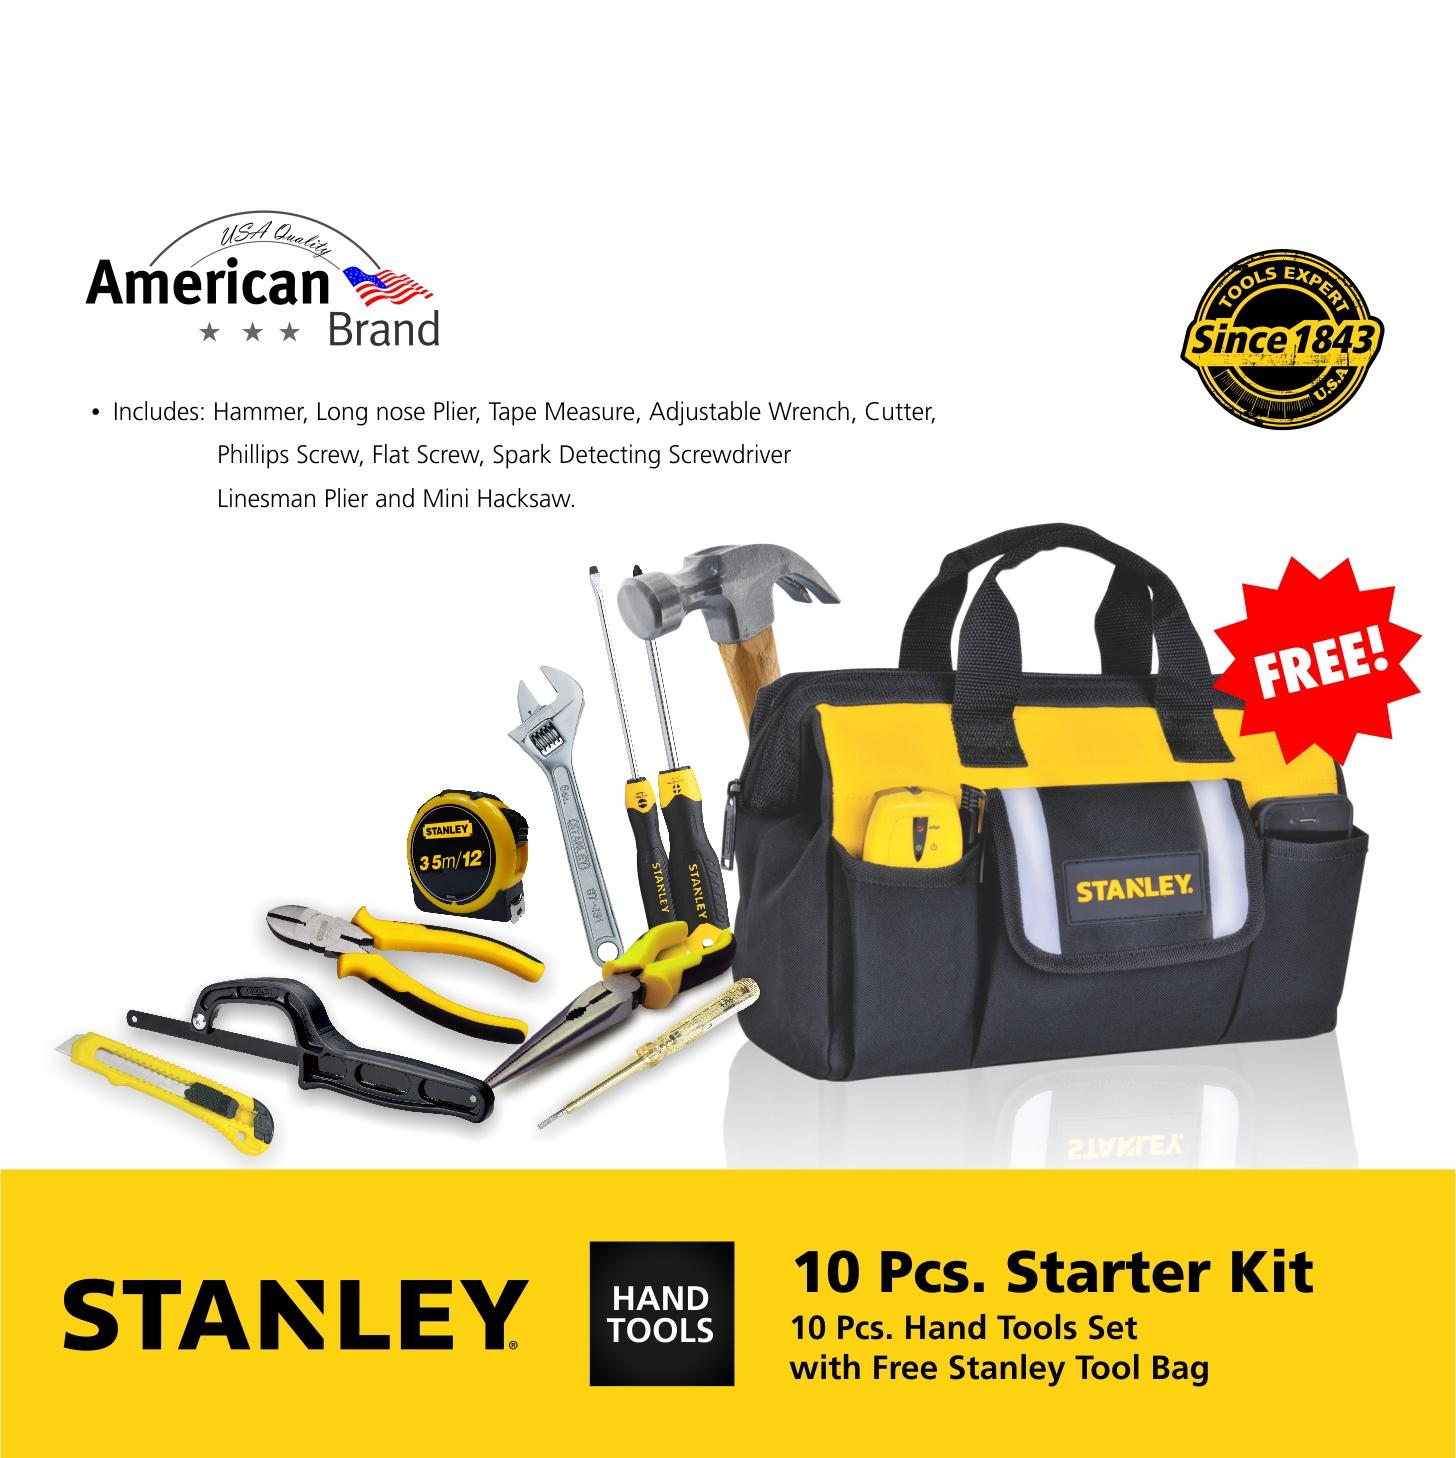 Stanley 10-Piece Starter Hand Tool Kit (Black/Yellow): Brand New Tools – applicable for doing repair work for difference appliances, it comes with Stanley tool bag with different pockets. Philippines